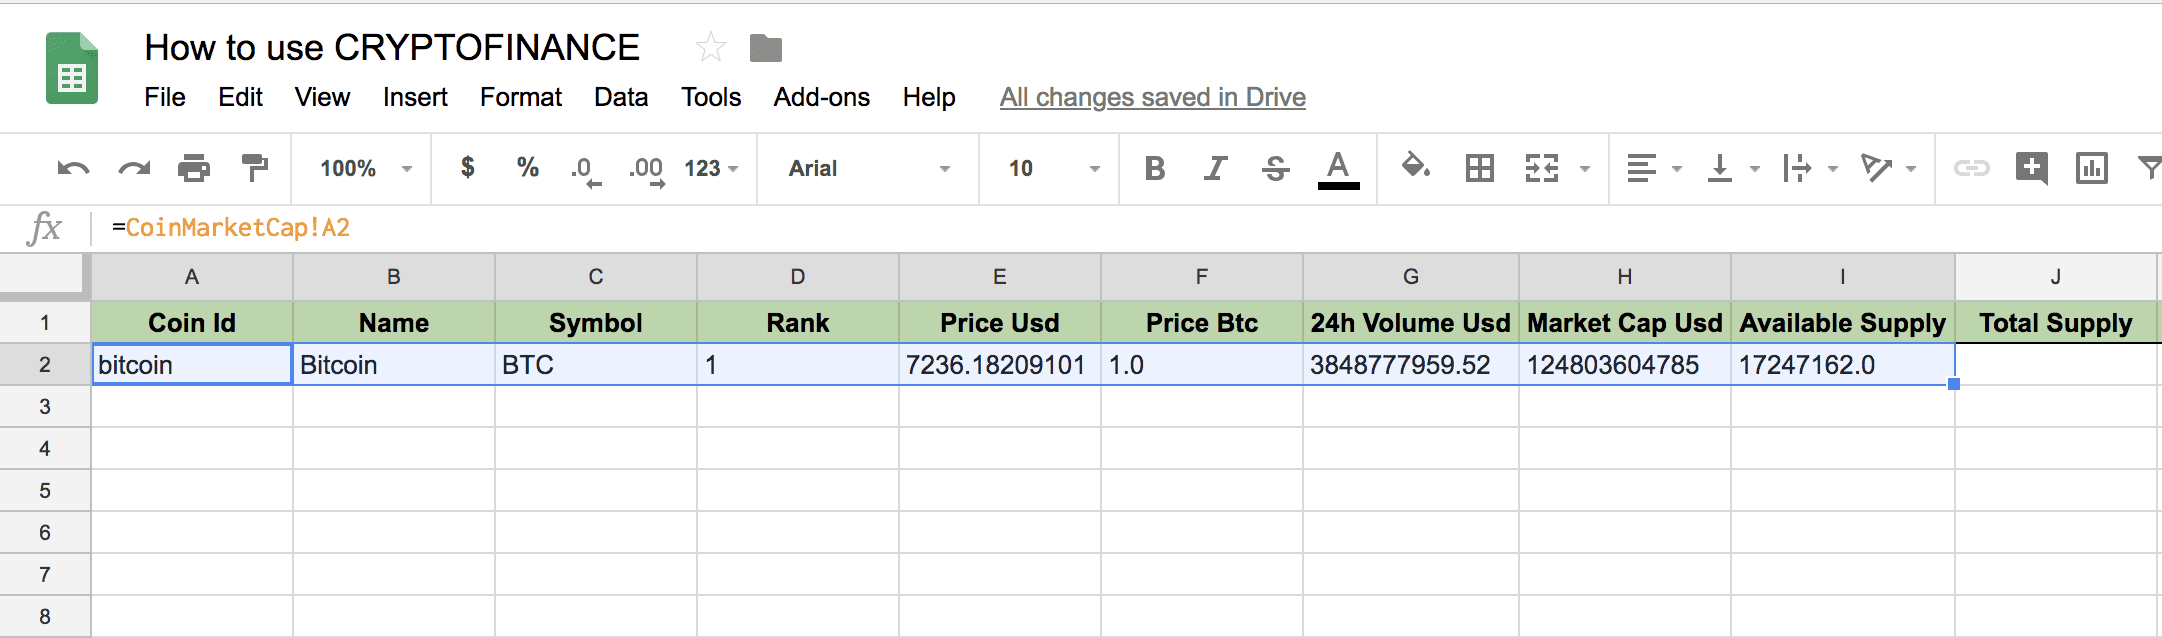 Cryptofinance in Google Sheets